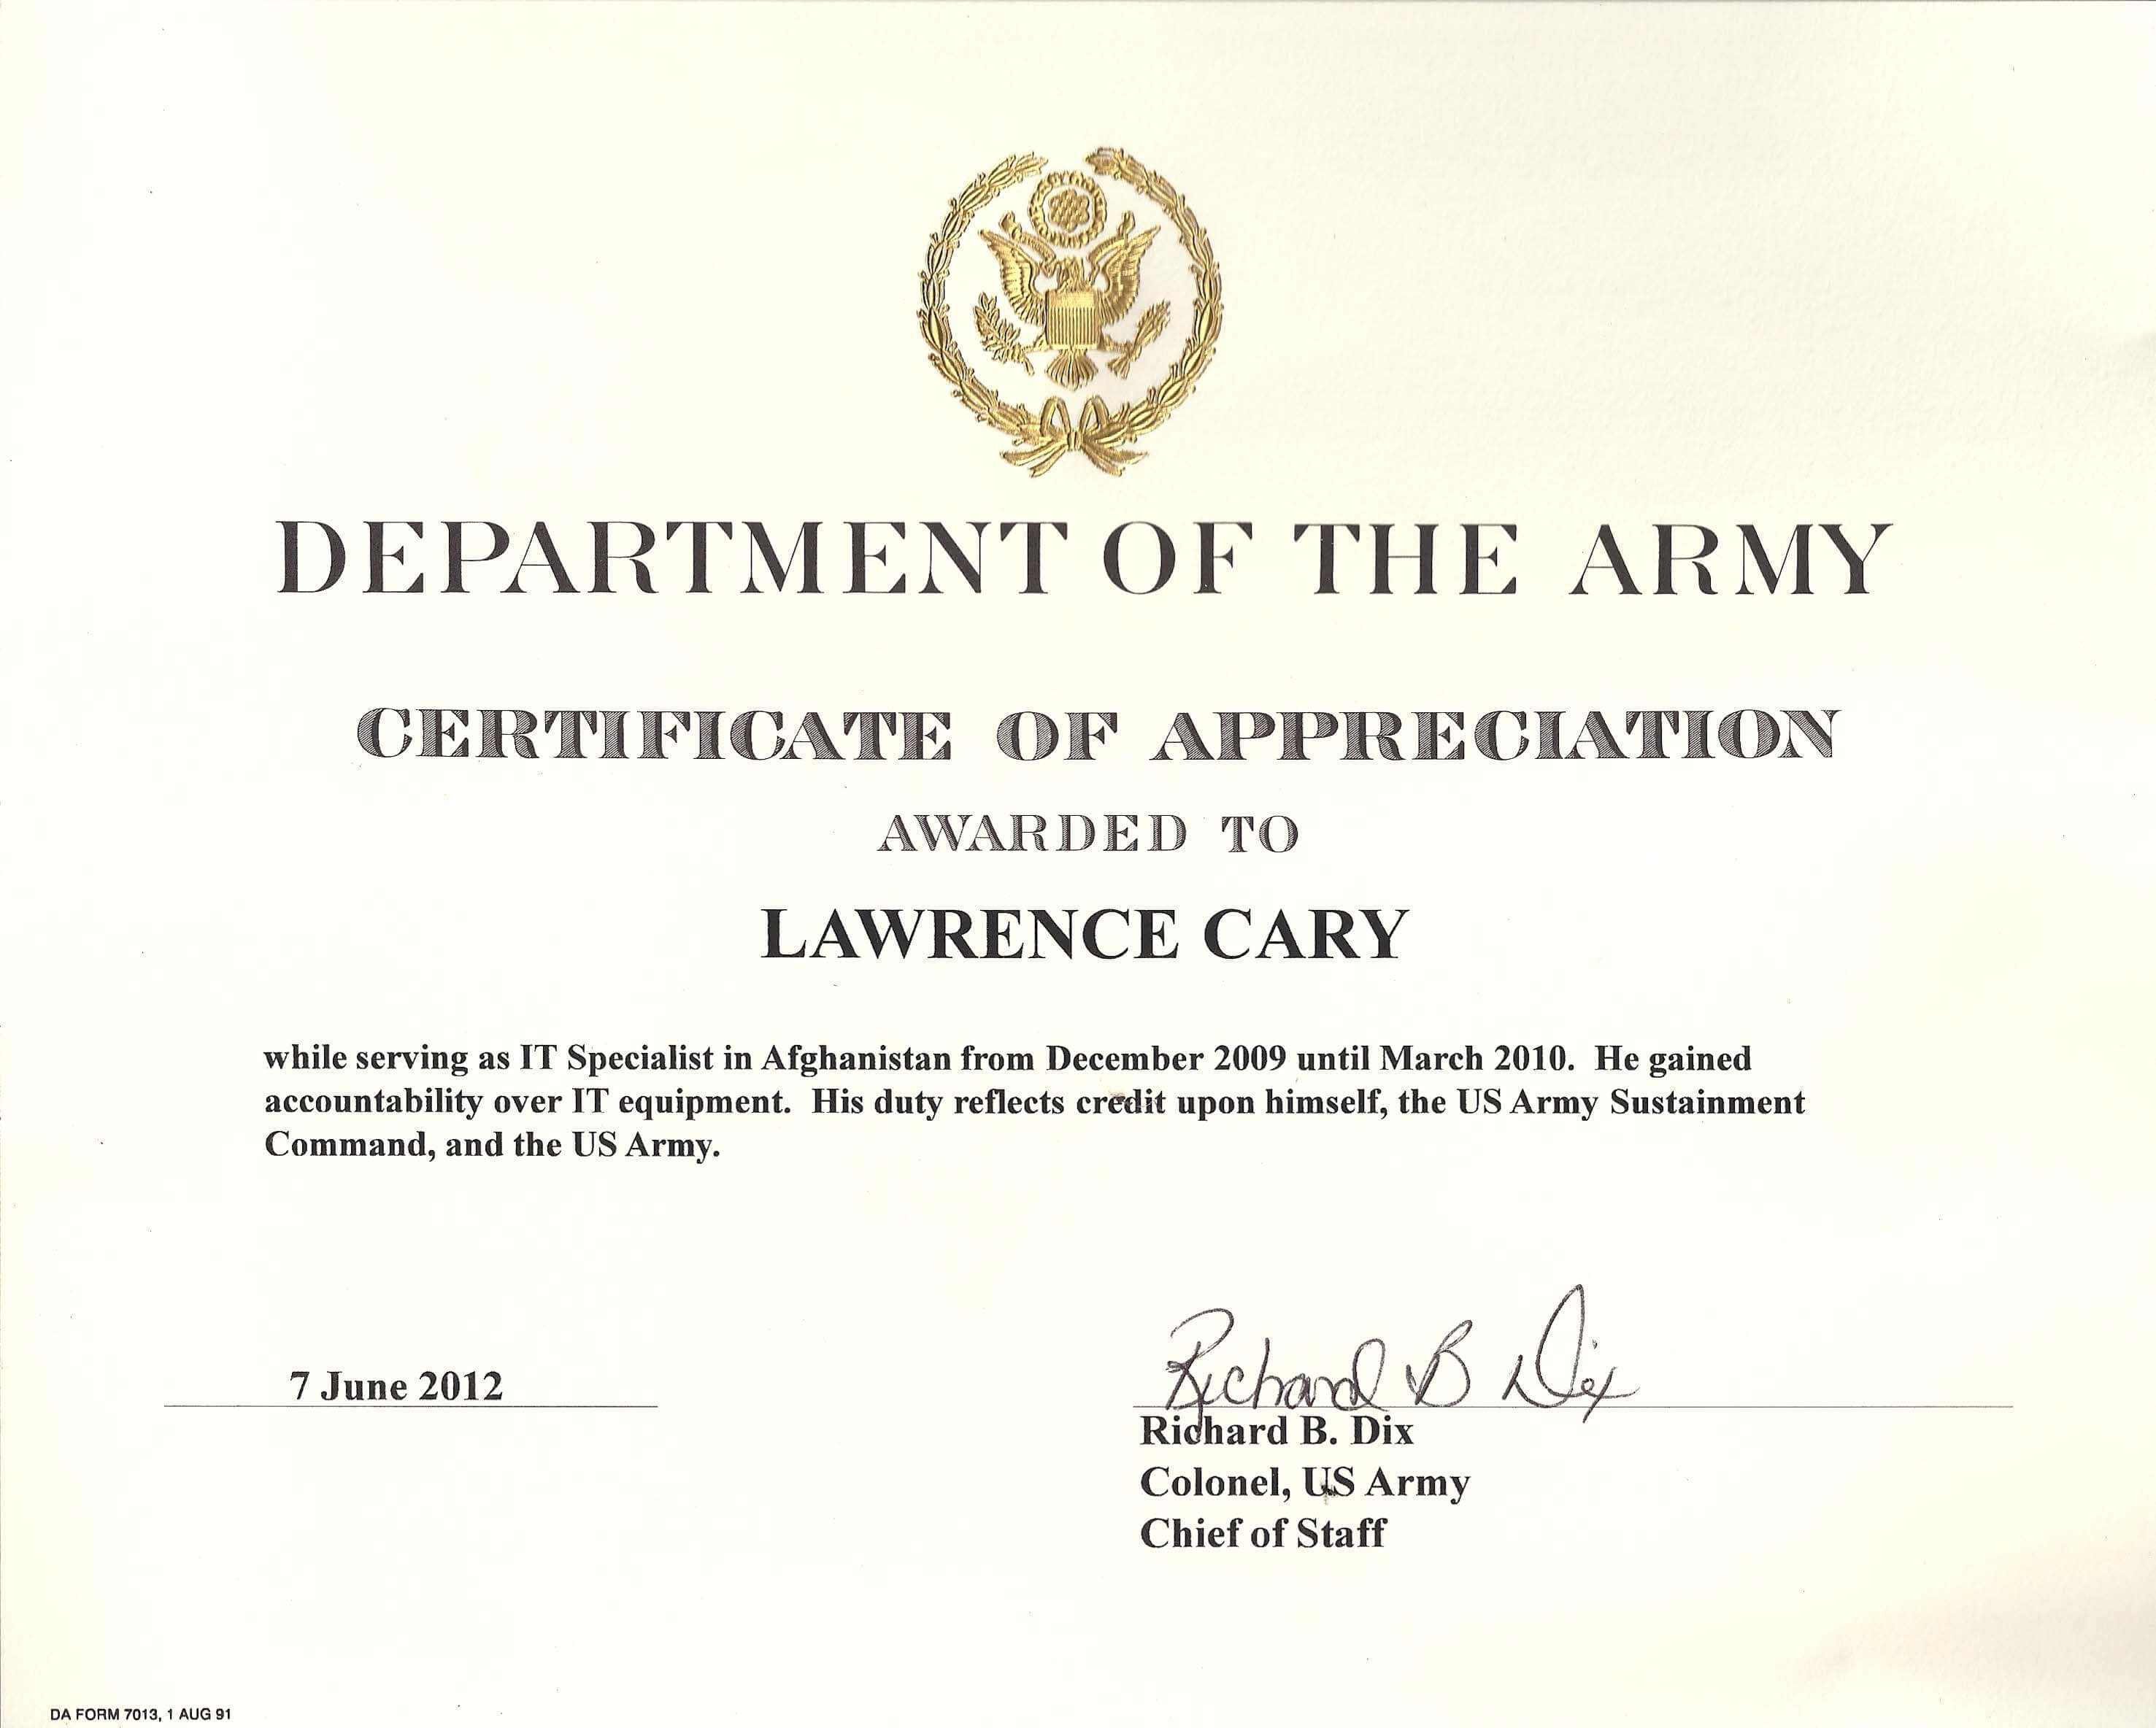 Army Certificate Of Completion Template - Atlantaauctionco For Certificate Of Achievement Army Template